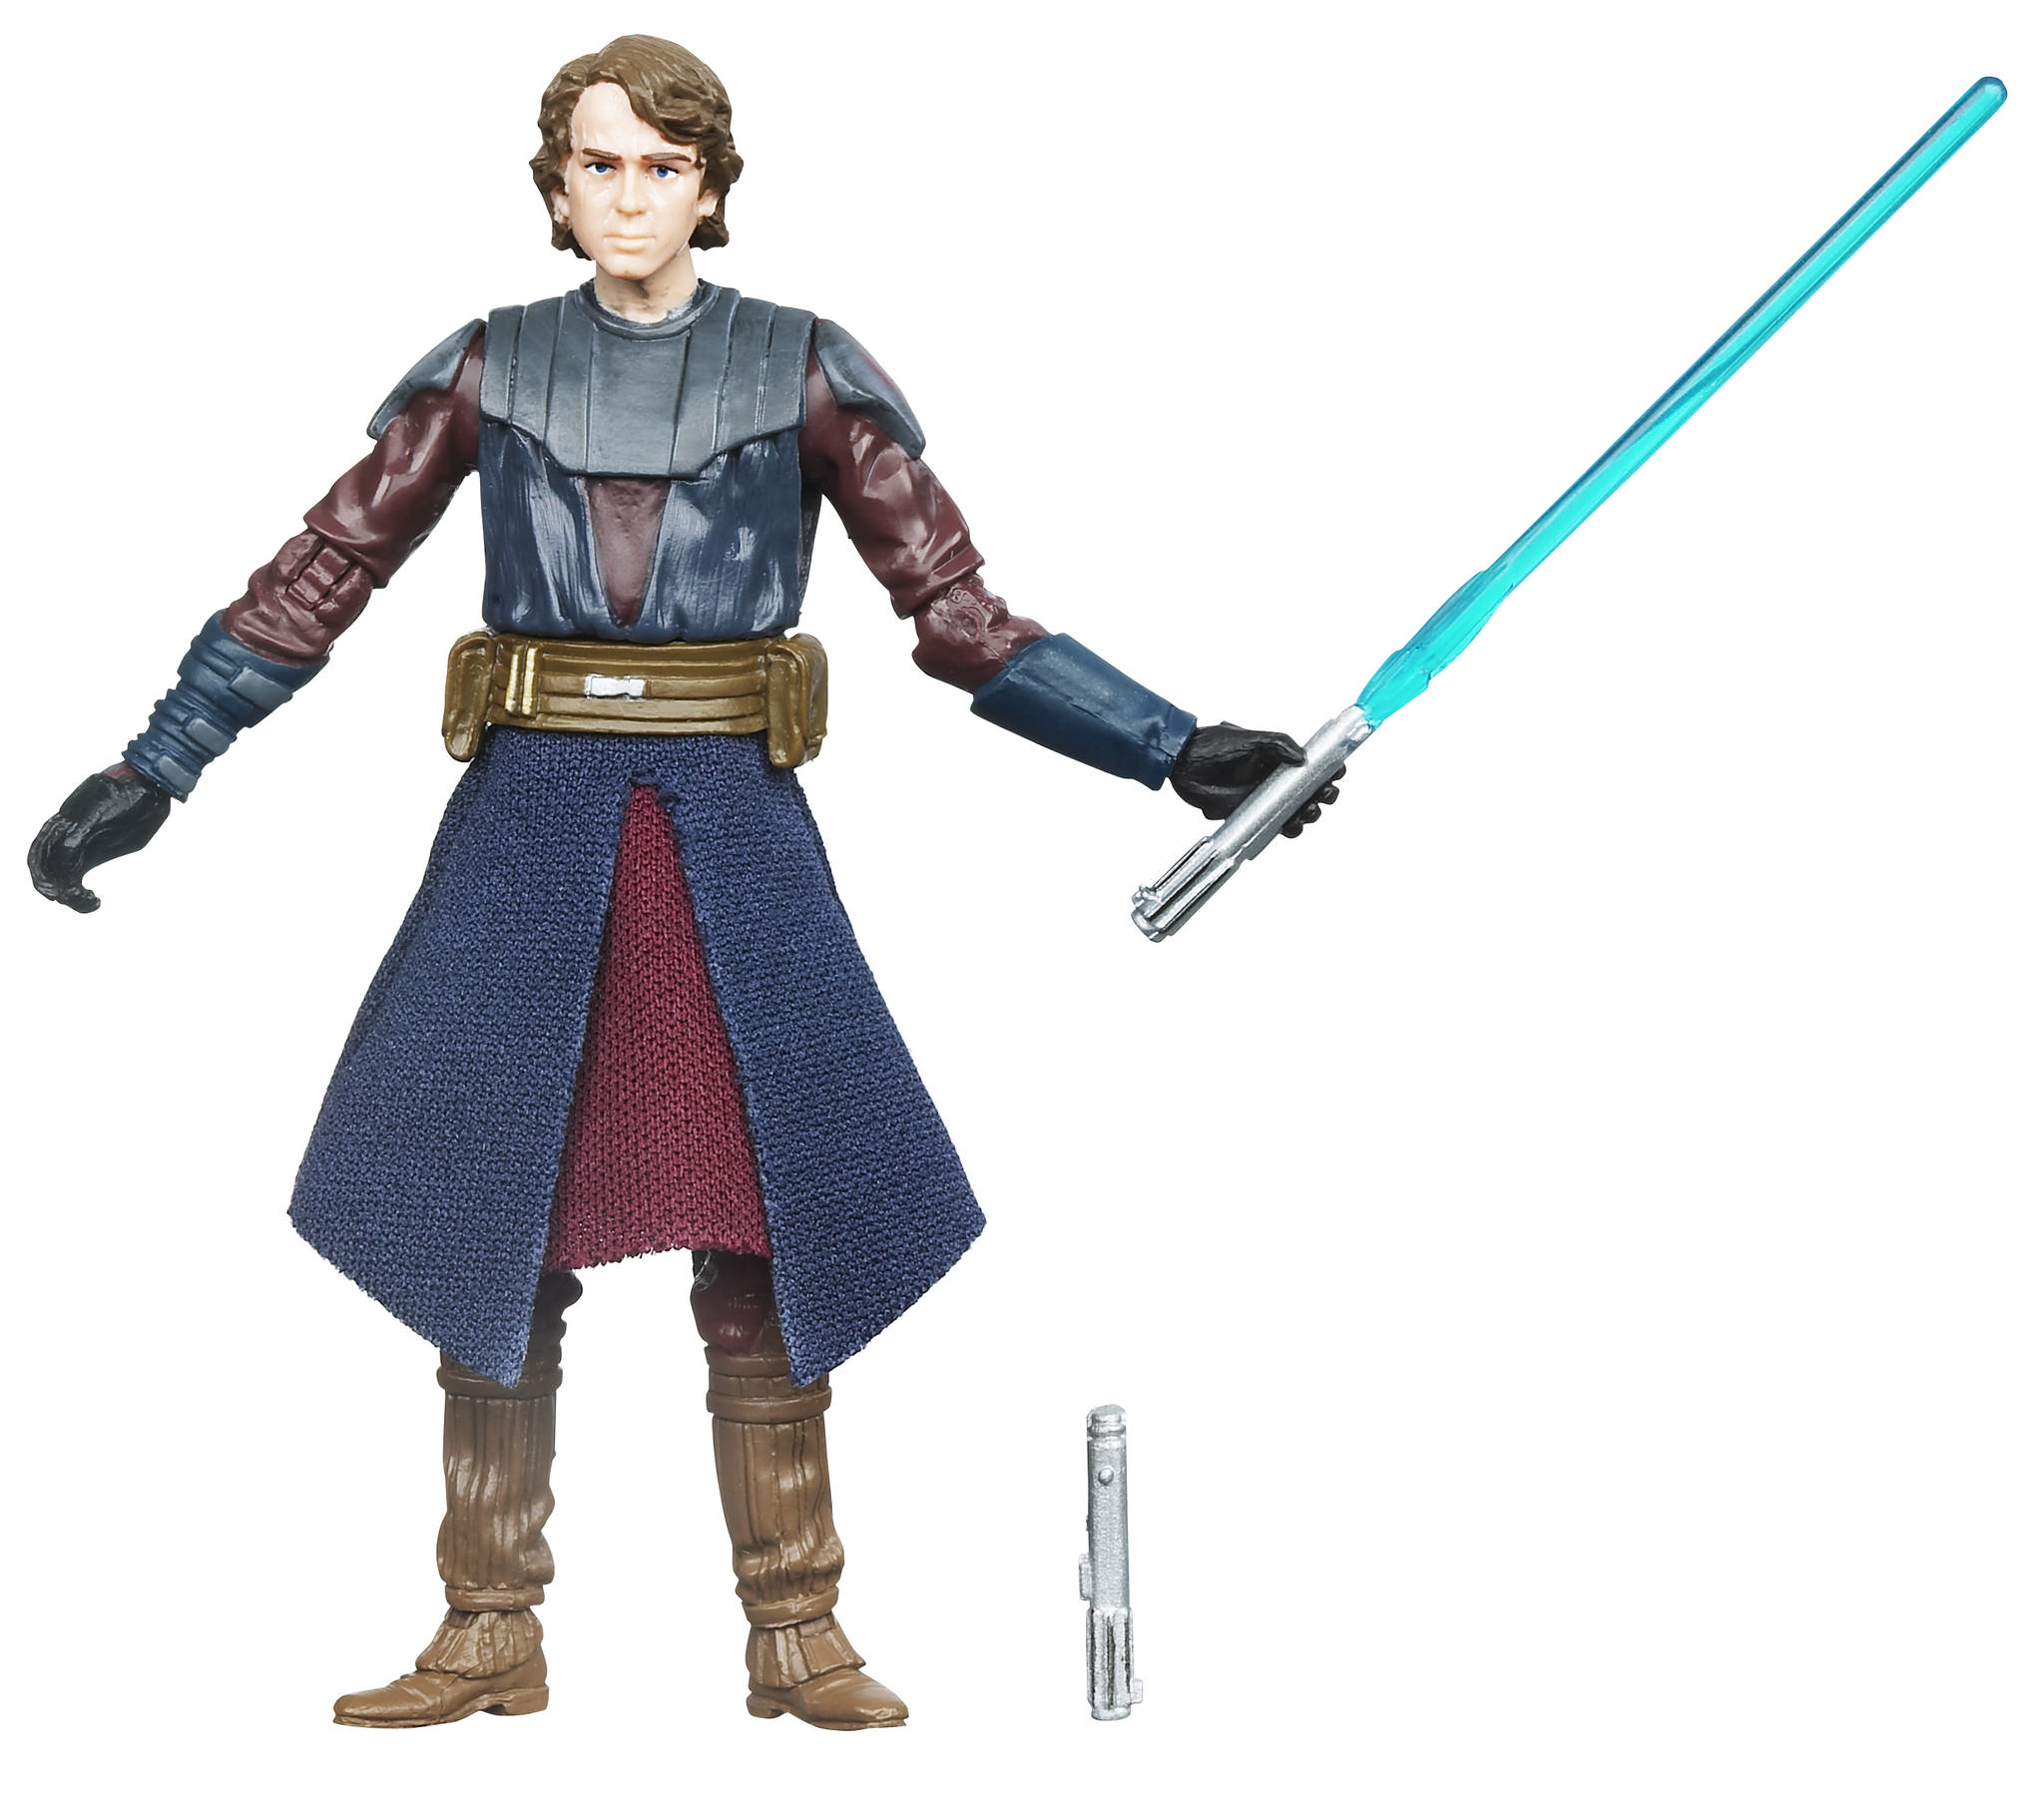 STAR WARS THE VINTAGE COLLECTION 3.75 INCH ANAKIN SKYWALKER Figure